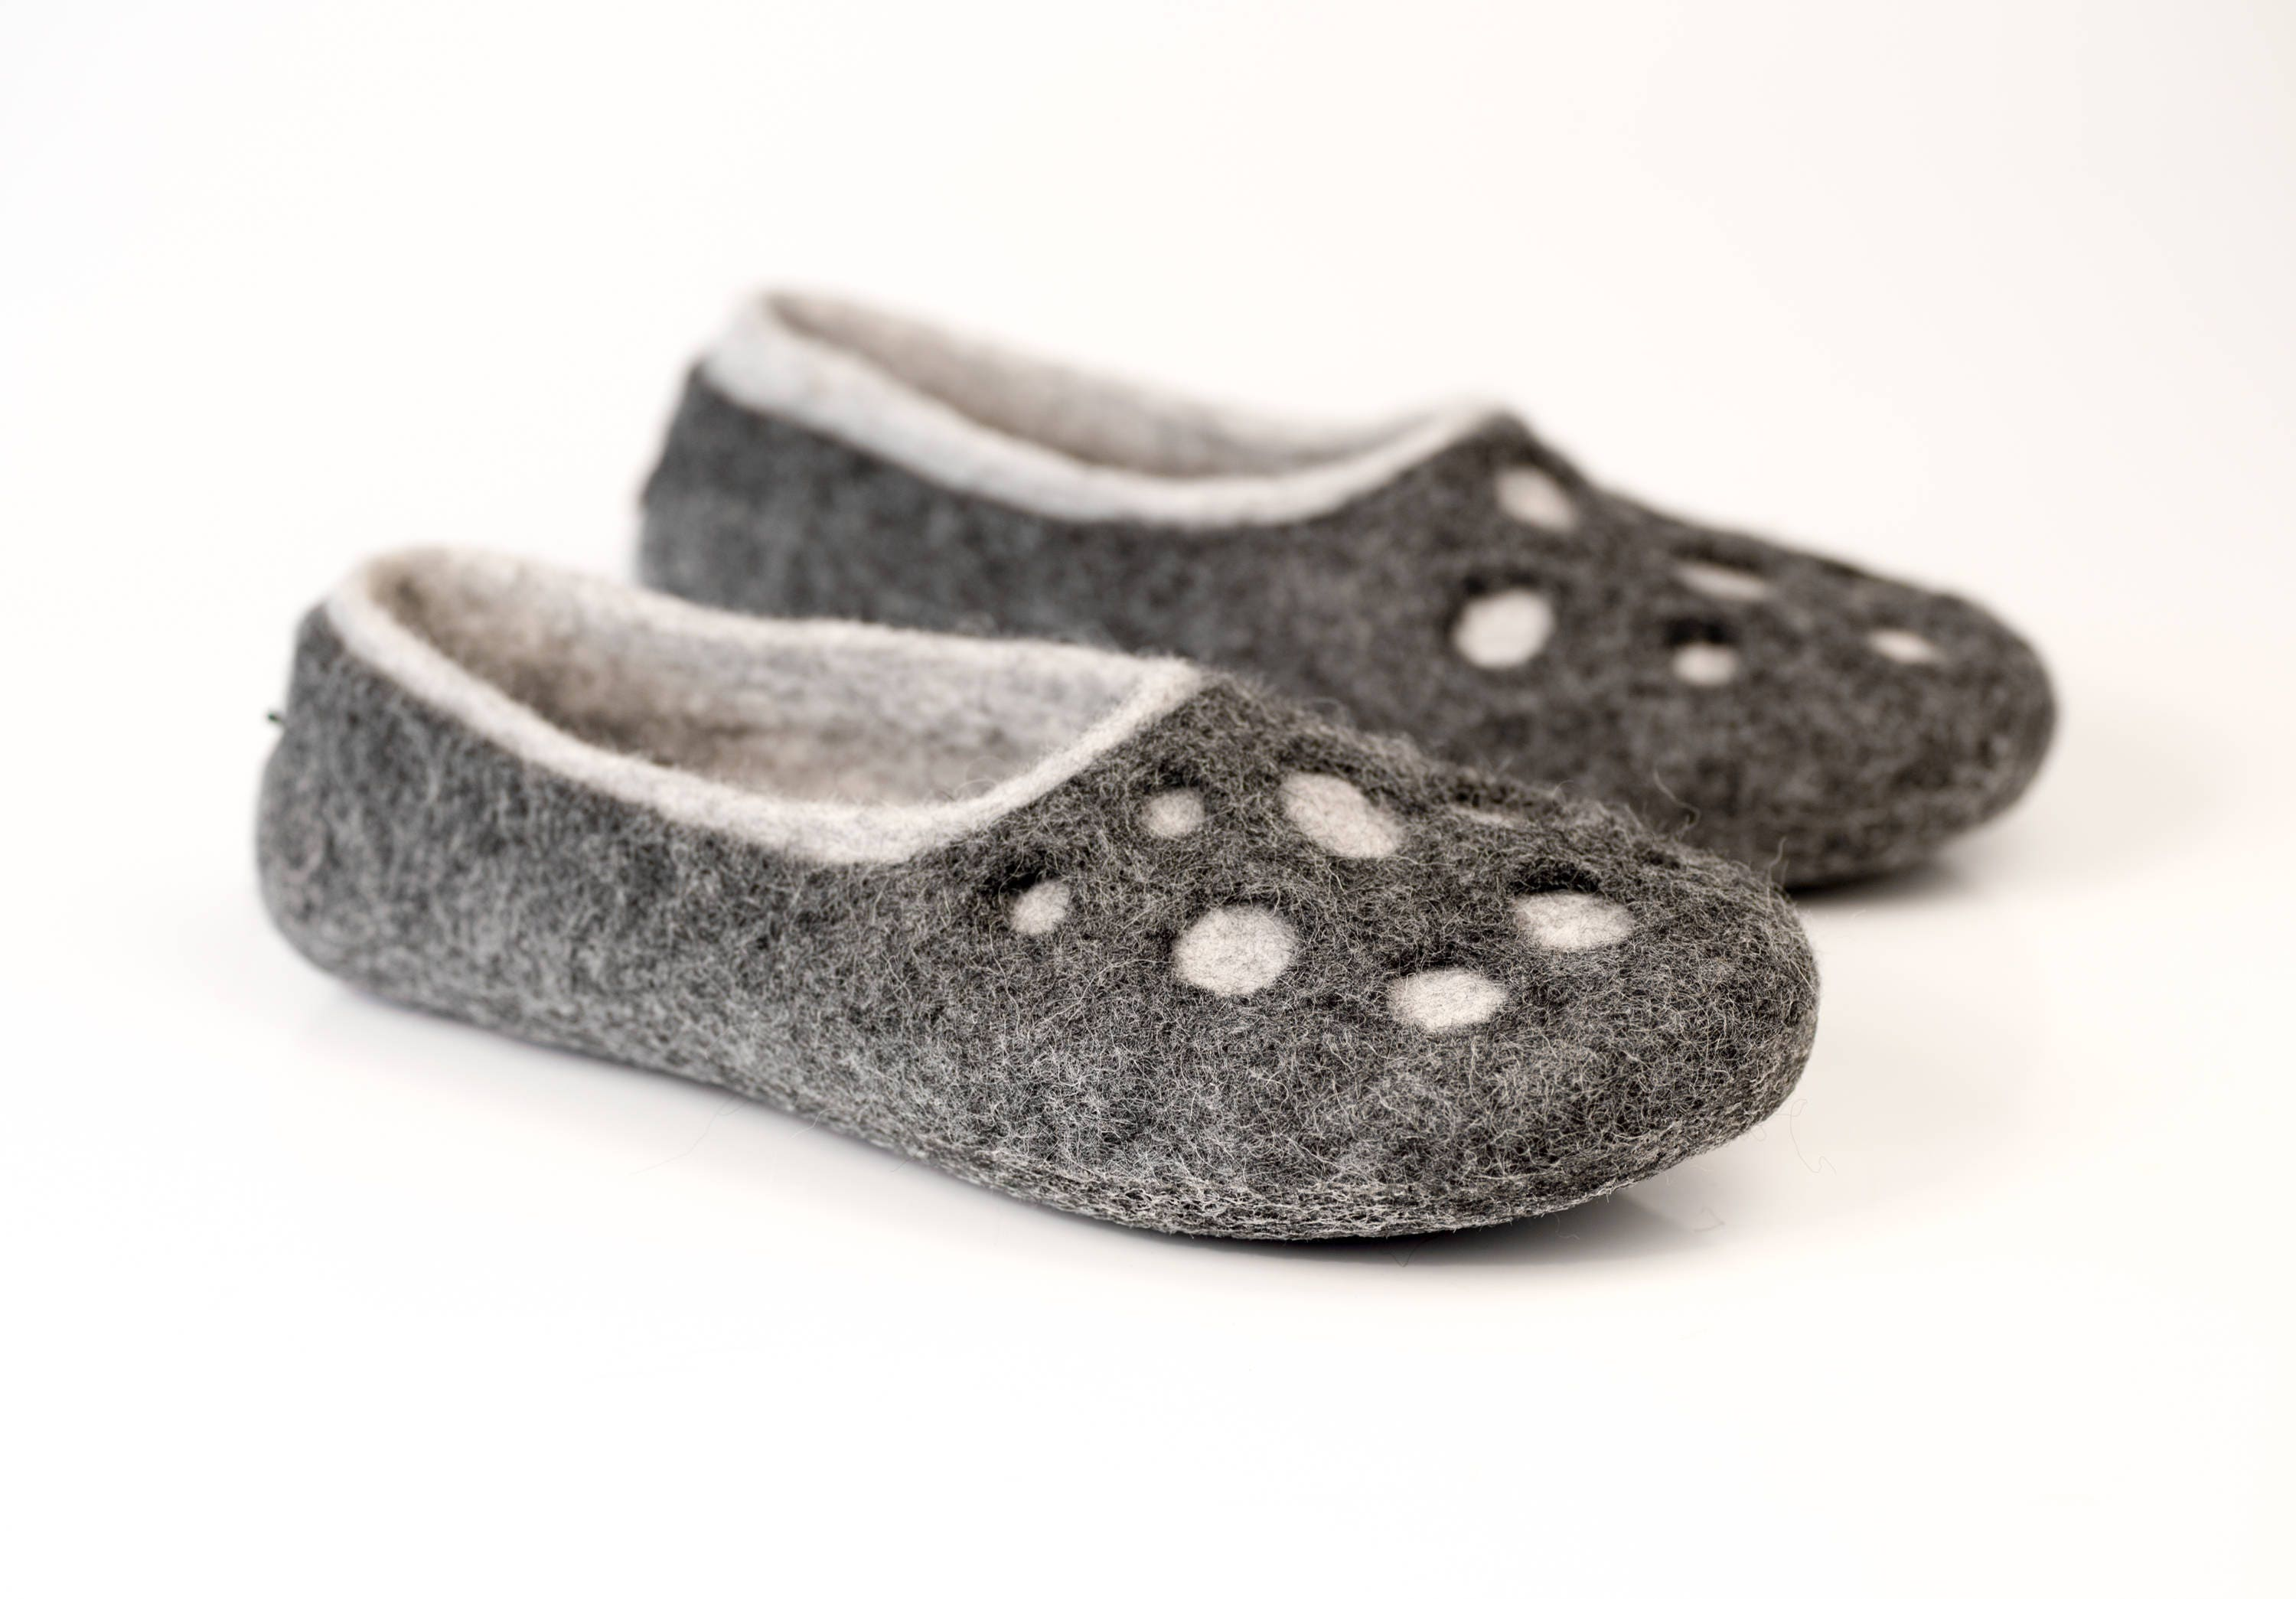 2b97d8a2979d5 Womens wool slippers Moon Craters, Warm boiled wool slippers, wool shoes,  handmade slippers, Warm Birthday gift, Grey slippers Felted shoes